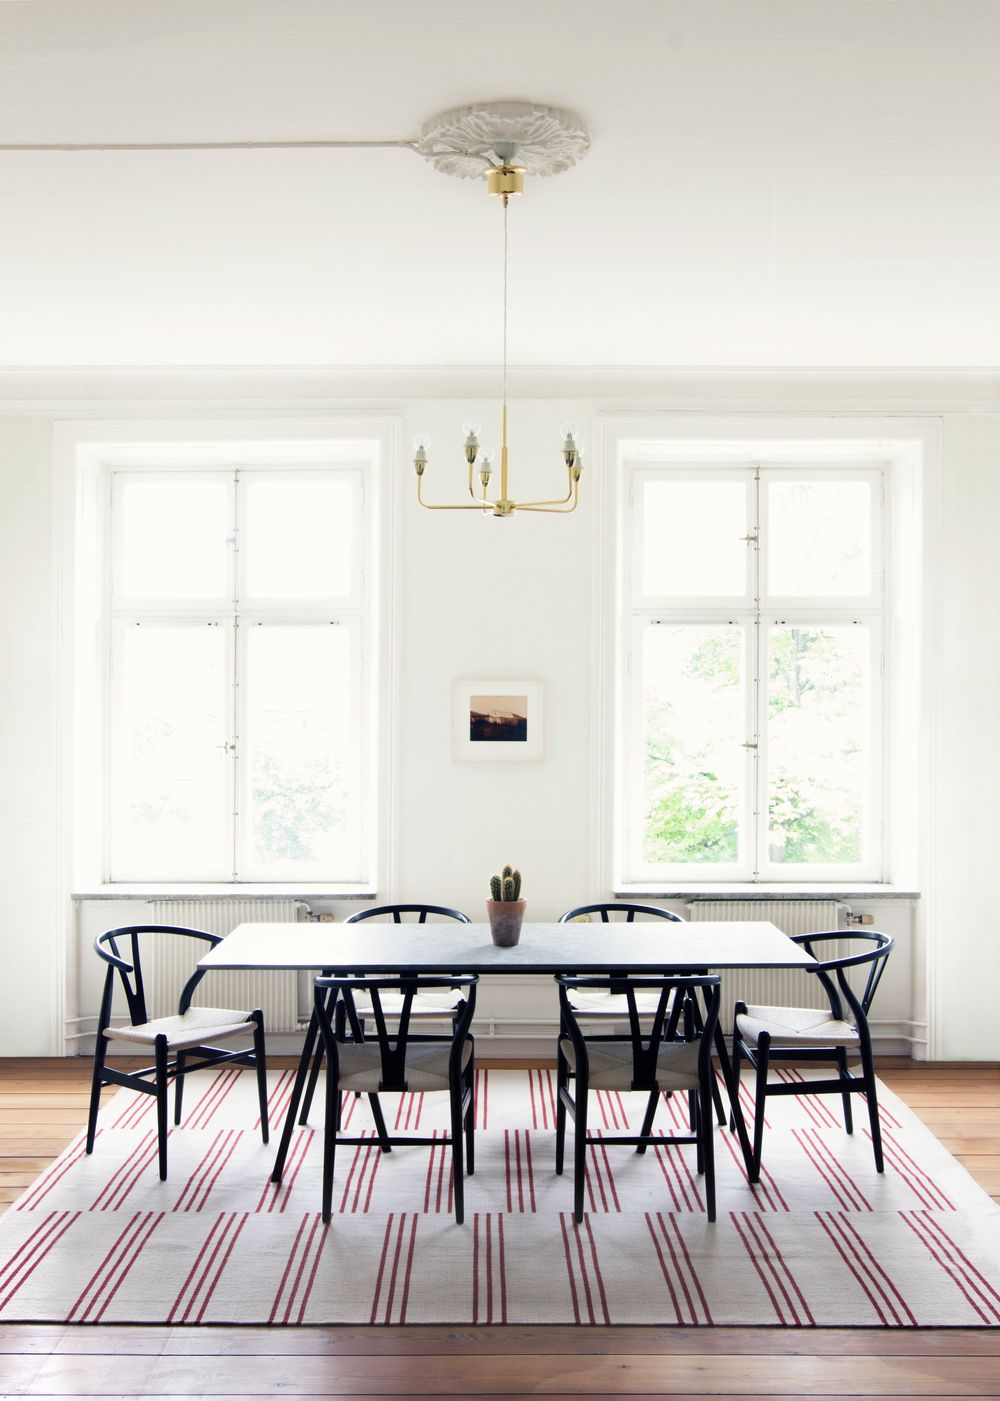 Everything In This Room Is Very Simple In Terms Of Design This Is Offset By The Striped Rug In 2020 Scandinavian Rug Home Scandinavian Design